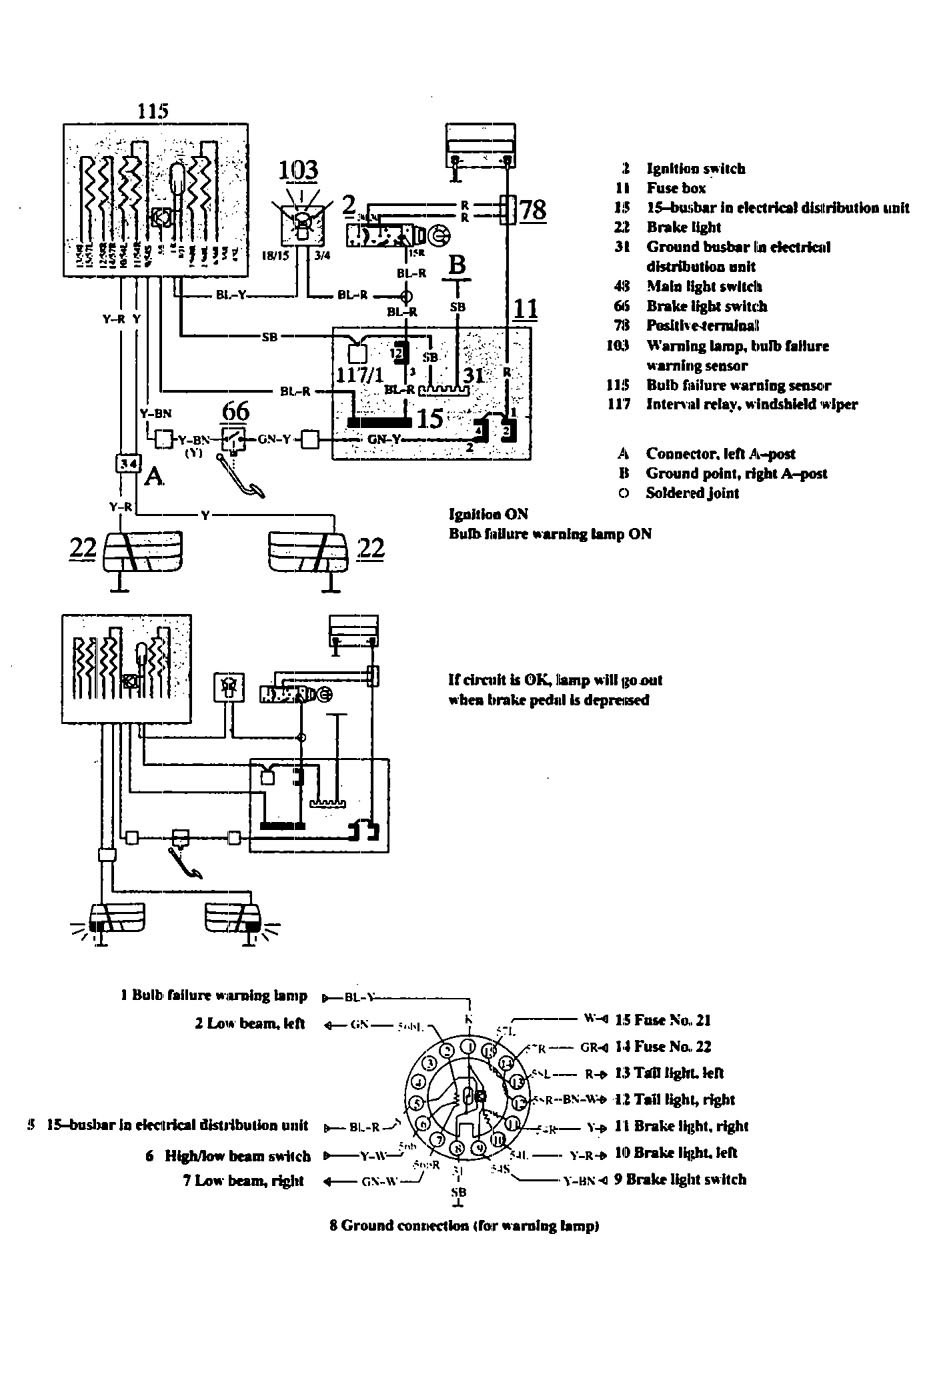 Volvo 740 1991 wiring diagrams audible warning system volvo 740 wiring diagram audible warning system swarovskicordoba Gallery